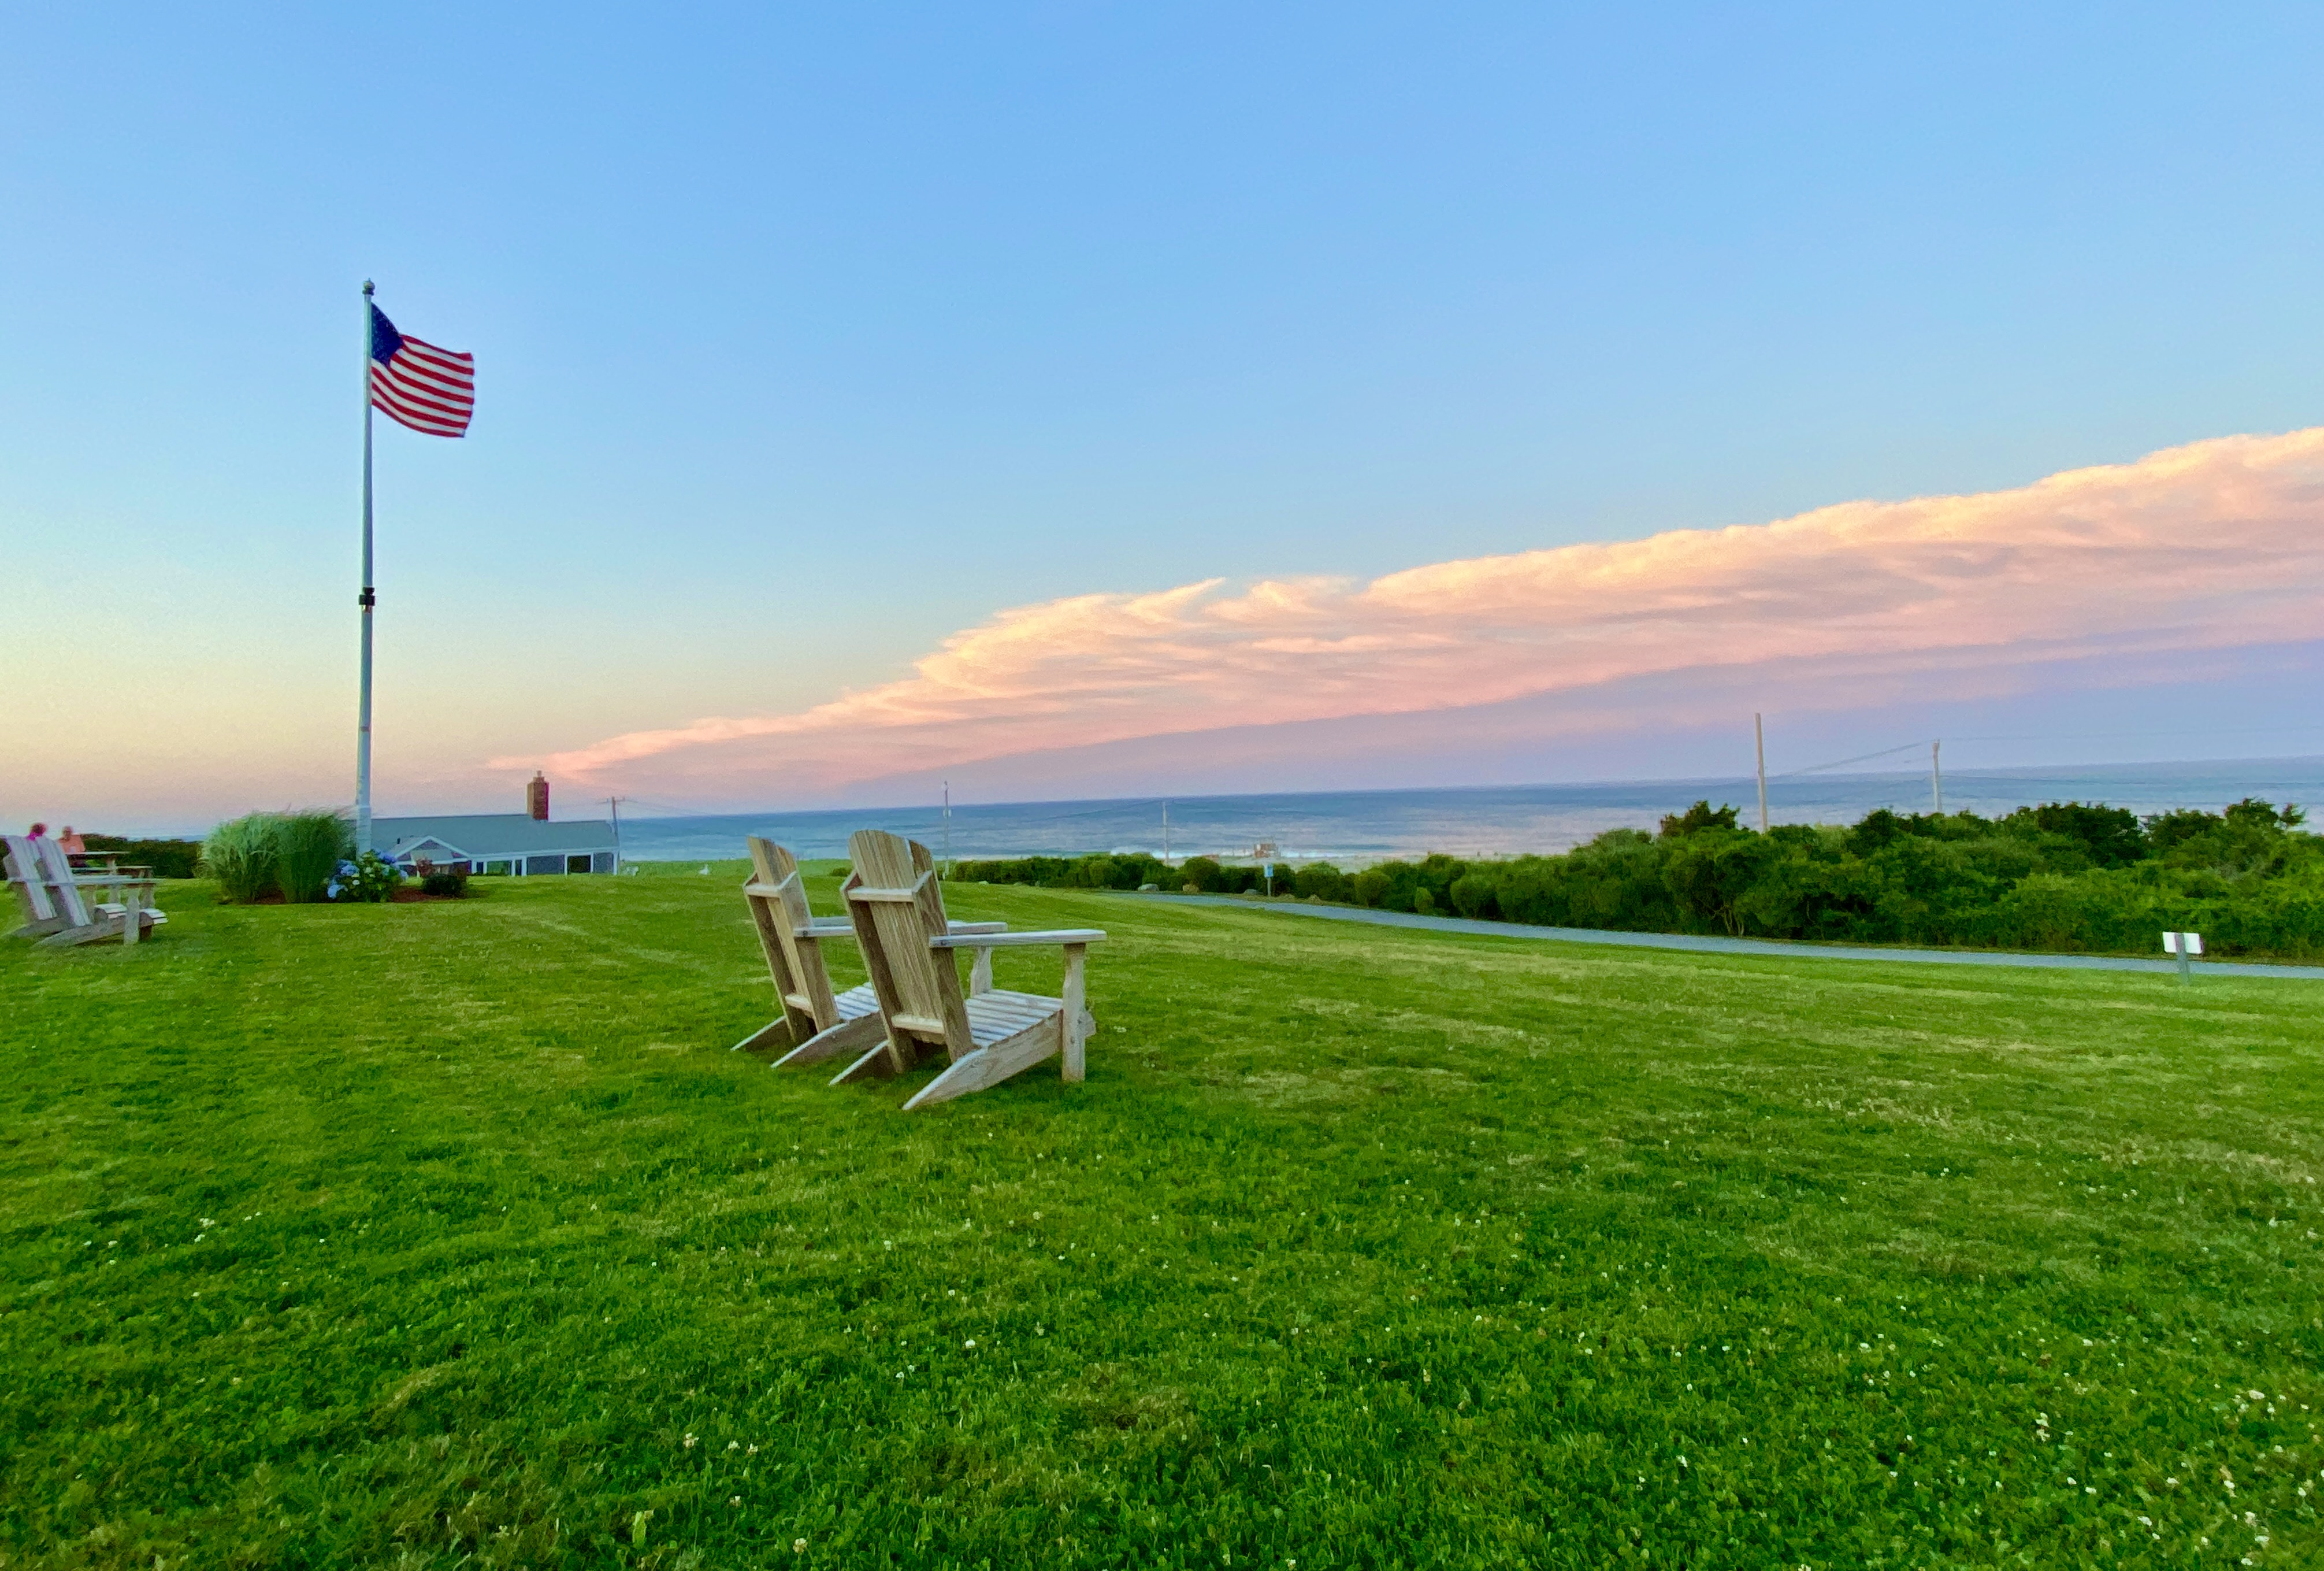 A view of Nauset Beach from the lawn of the Nauset Beach Inn in Orléans.